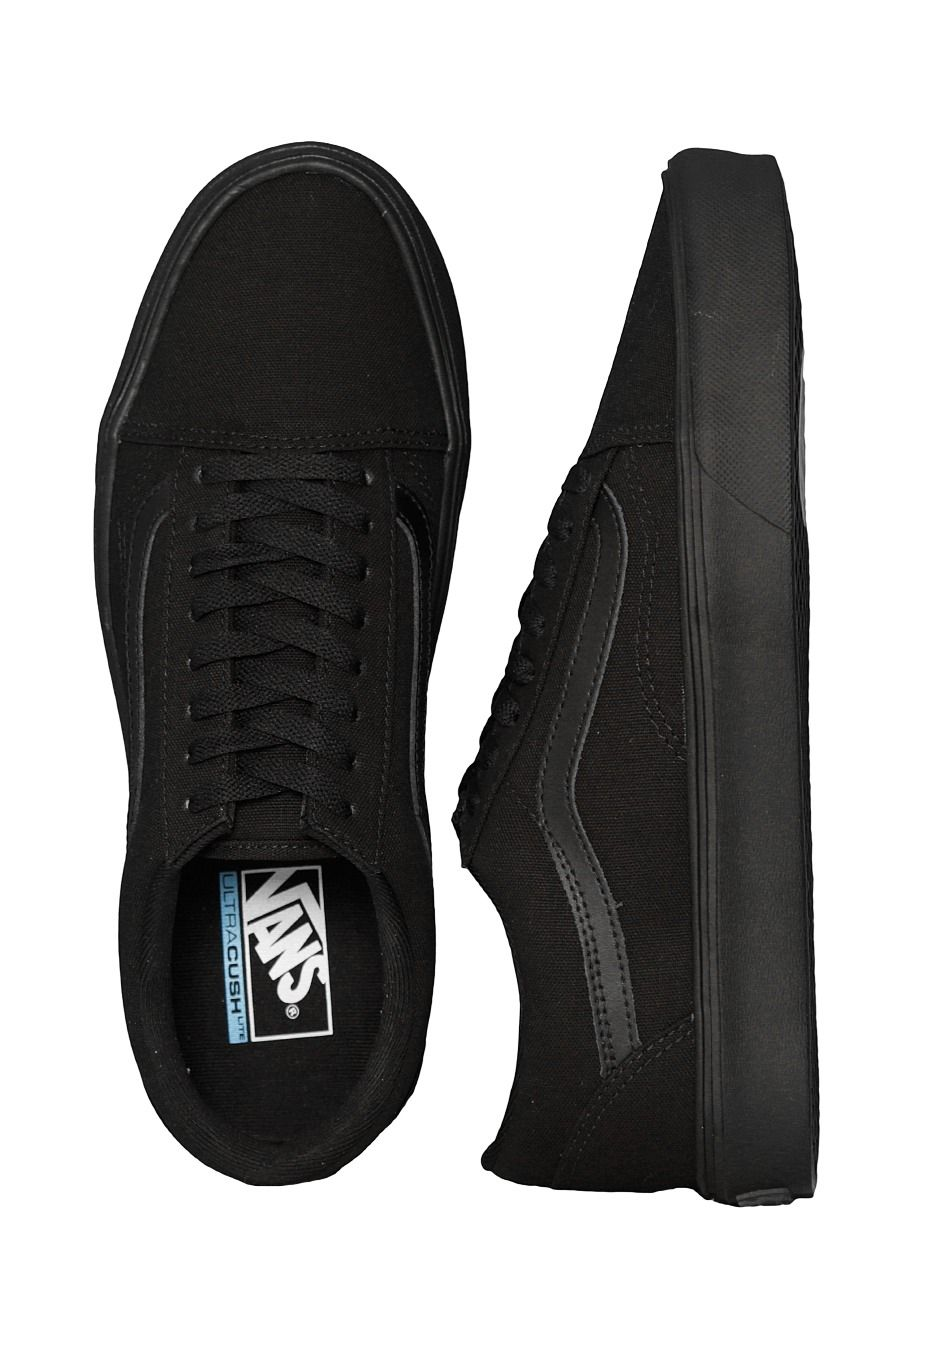 1a635f0b3802 Checkout this out  Vans - Old Skool Lite + Canvas Black Black - Girl Schuhe  for 79